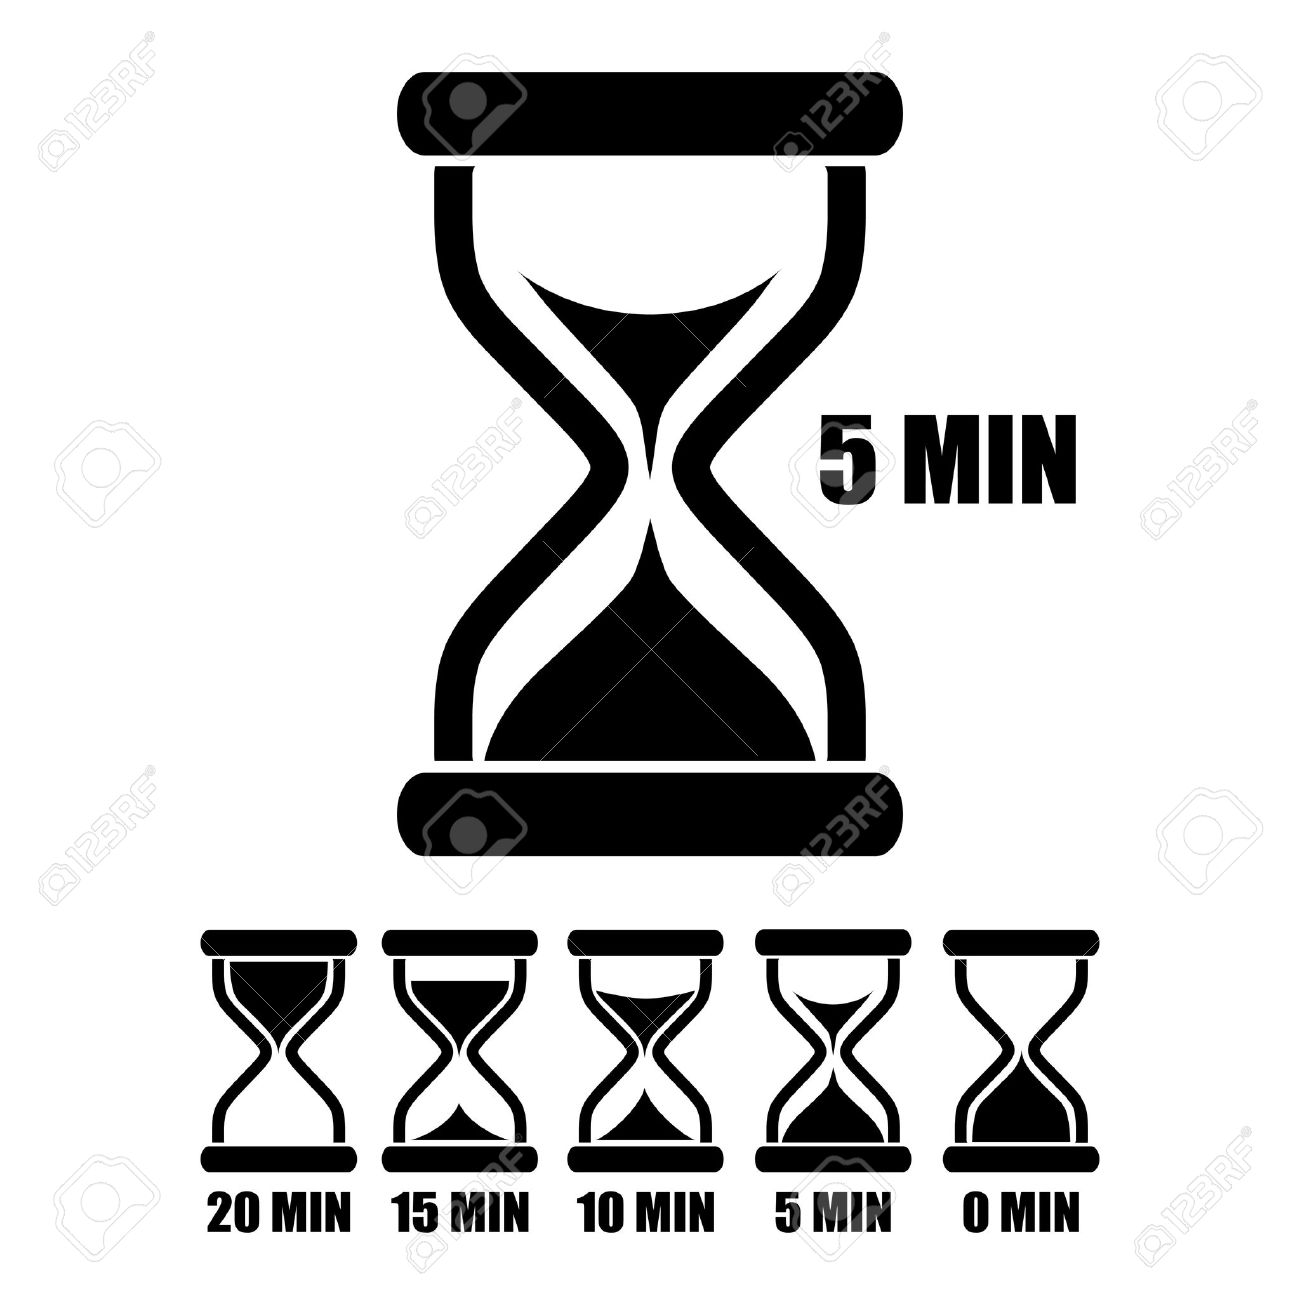 Vector Sand Glass Timer Royalty Free Cliparts, Vectors, And Stock ...